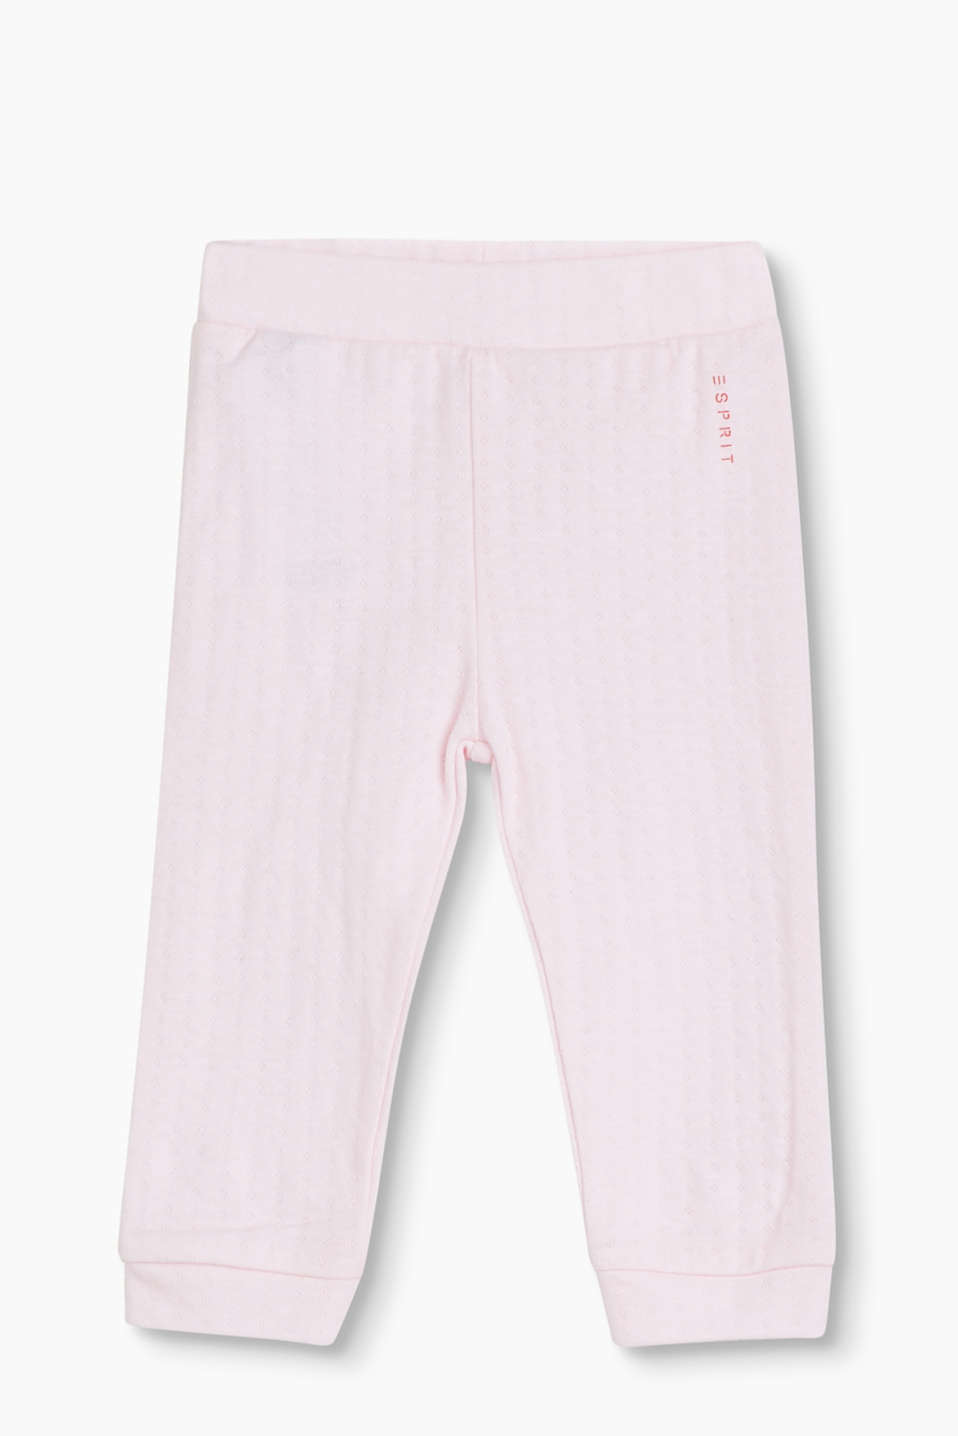 Super soft tracksuit bottoms in soft cotton jersey with added stretch for comfort, organic cotton blend